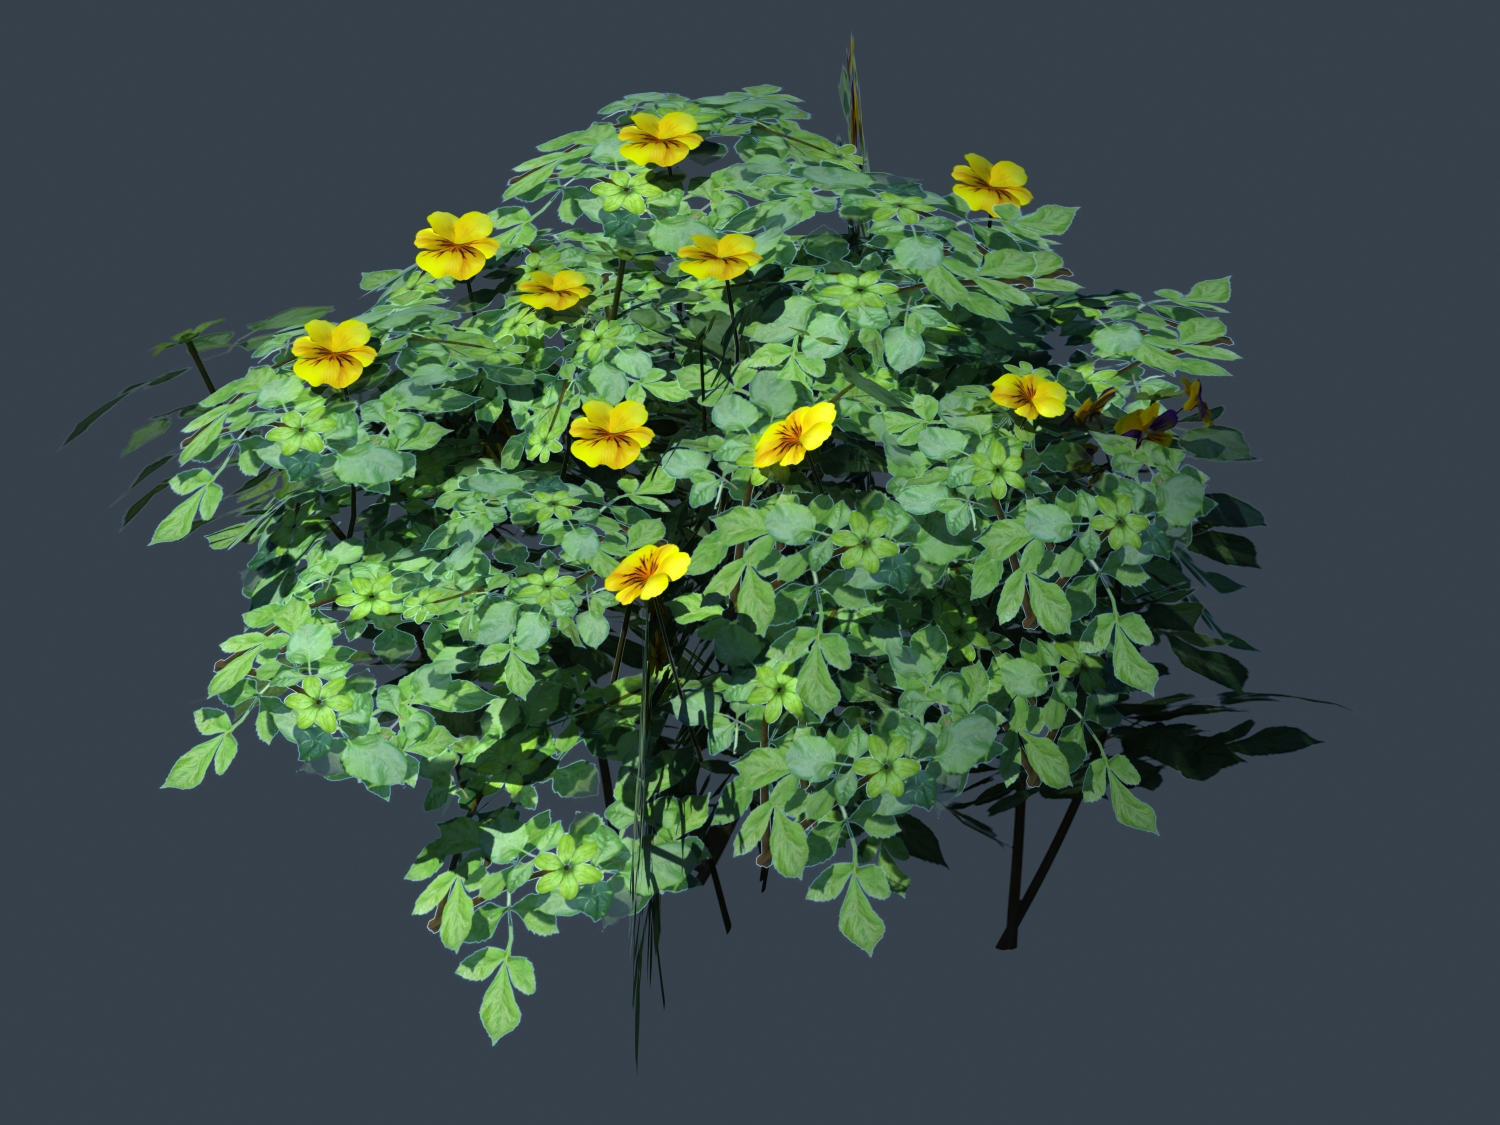 Yellow Flower Bush Plant 3d Model 3ds Max Files Free Download